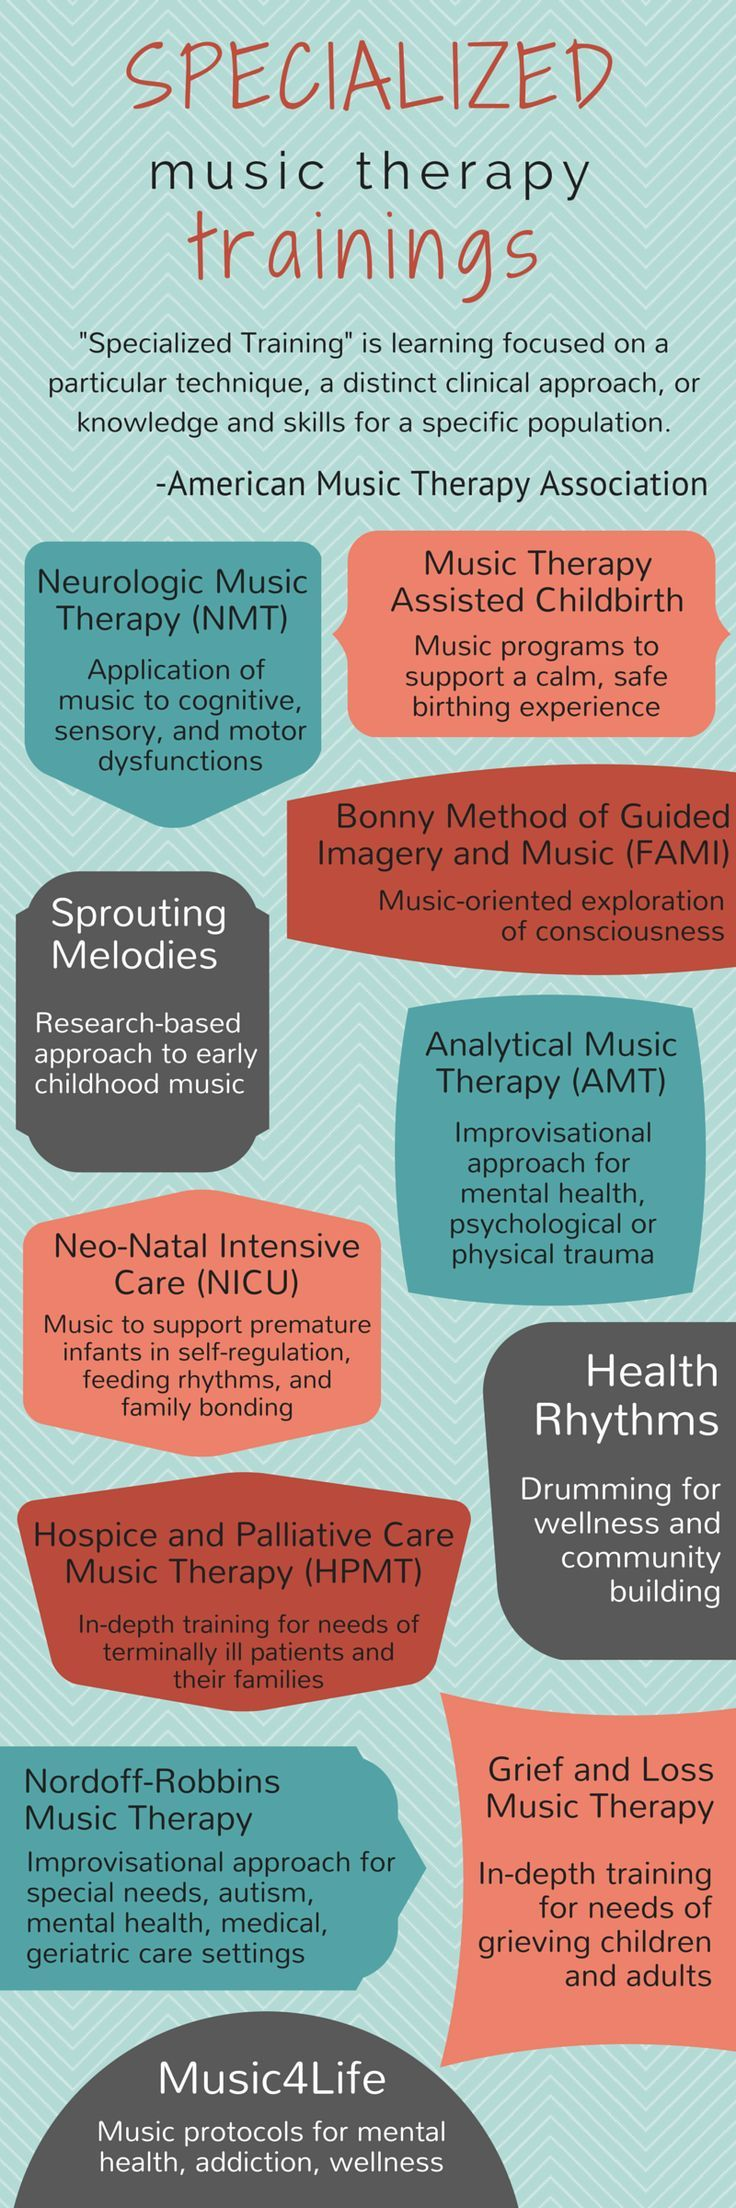 Specialized Music Therapy Trainings 1 Music Therapy Interventions Music Therapy Activities Music Therapy